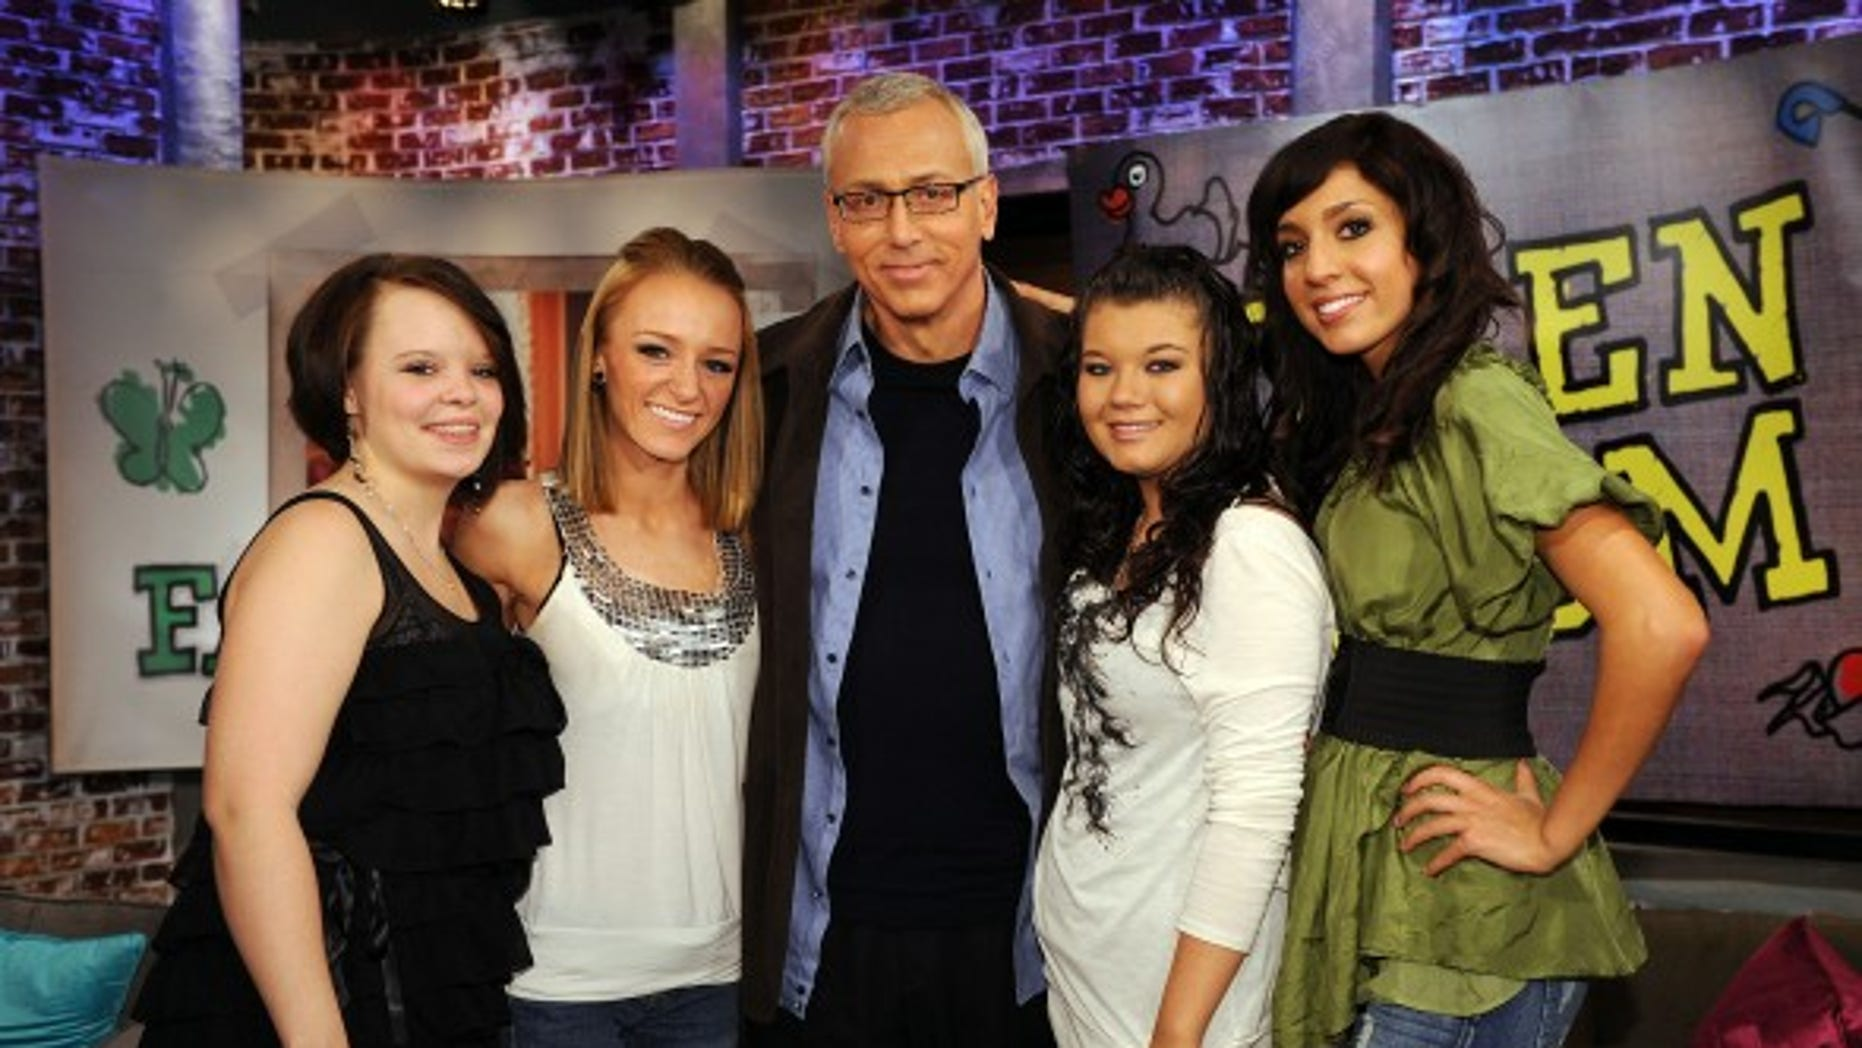 The stars of 'Teen Mom.' Amber Portwood is the third mom from the left. (MTV)